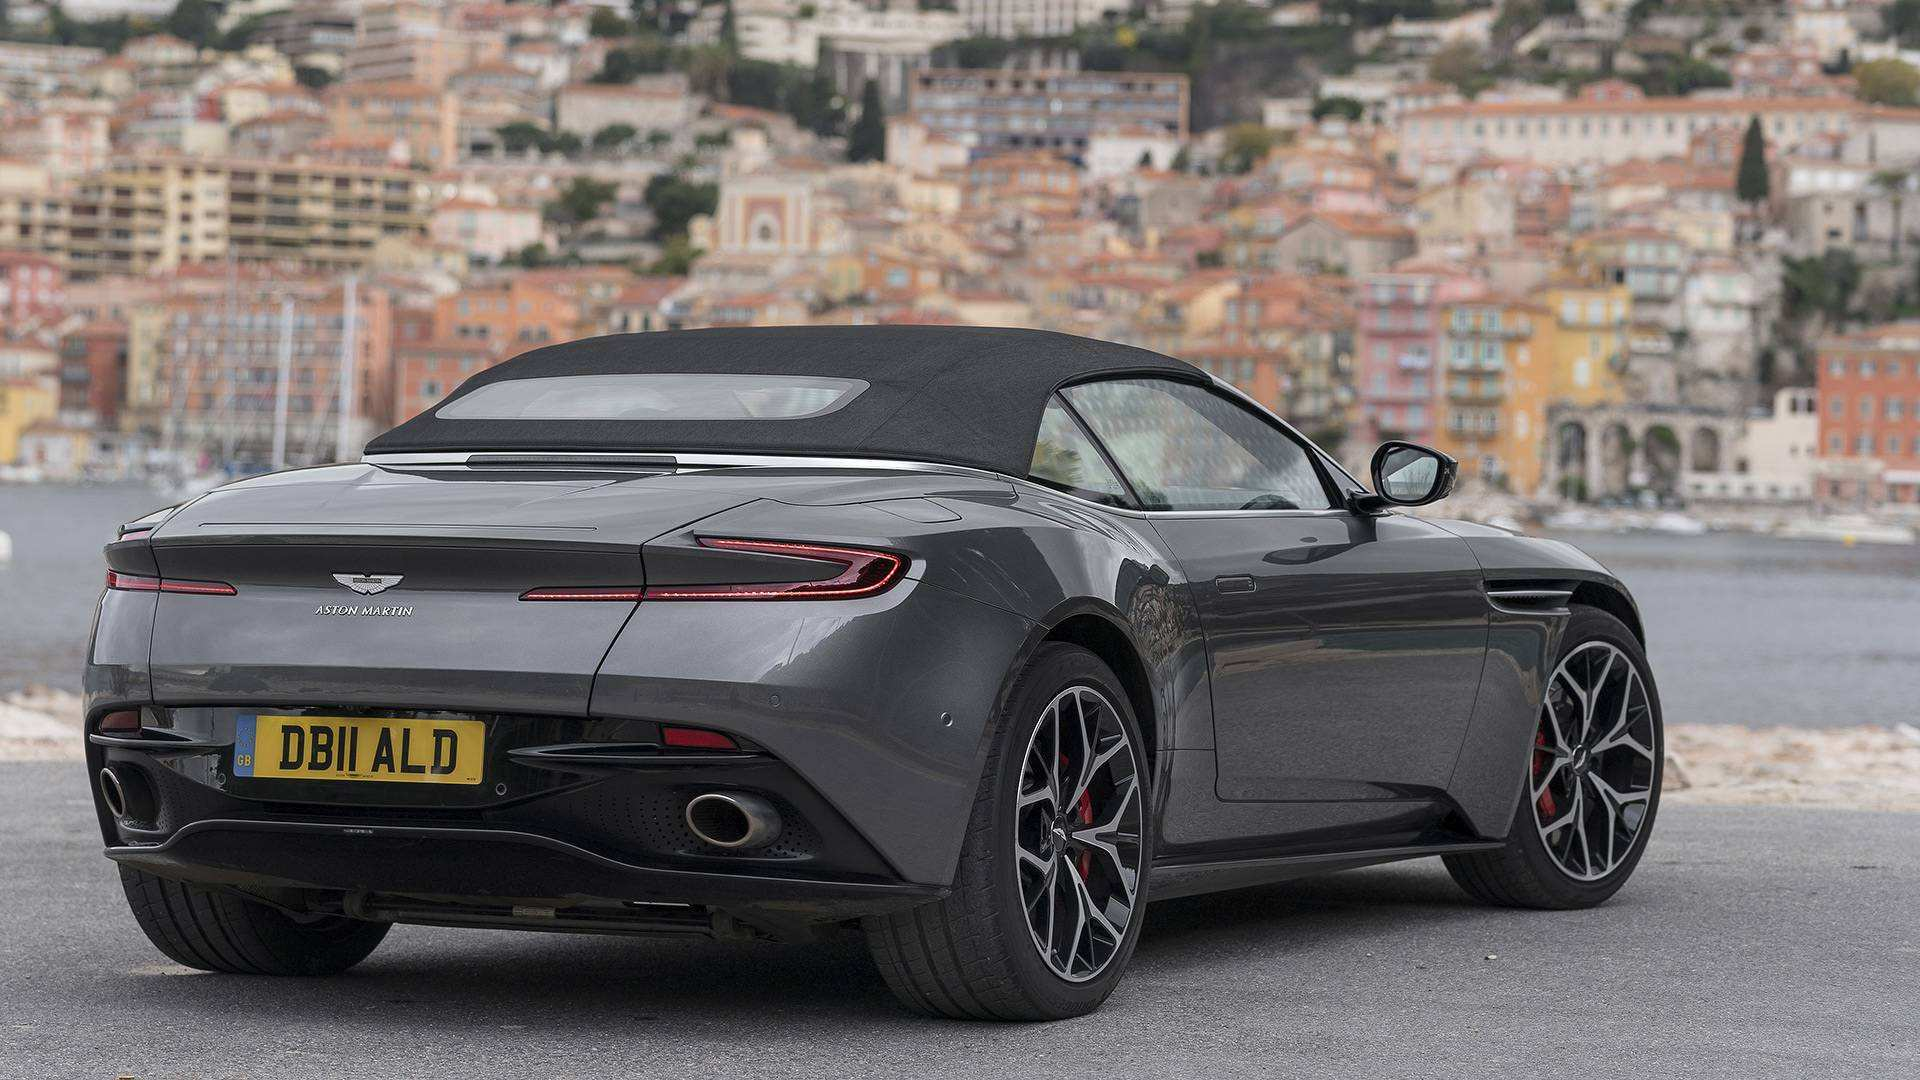 46 Best Review 2019 Aston Martin Db11 Concept for 2019 Aston Martin Db11